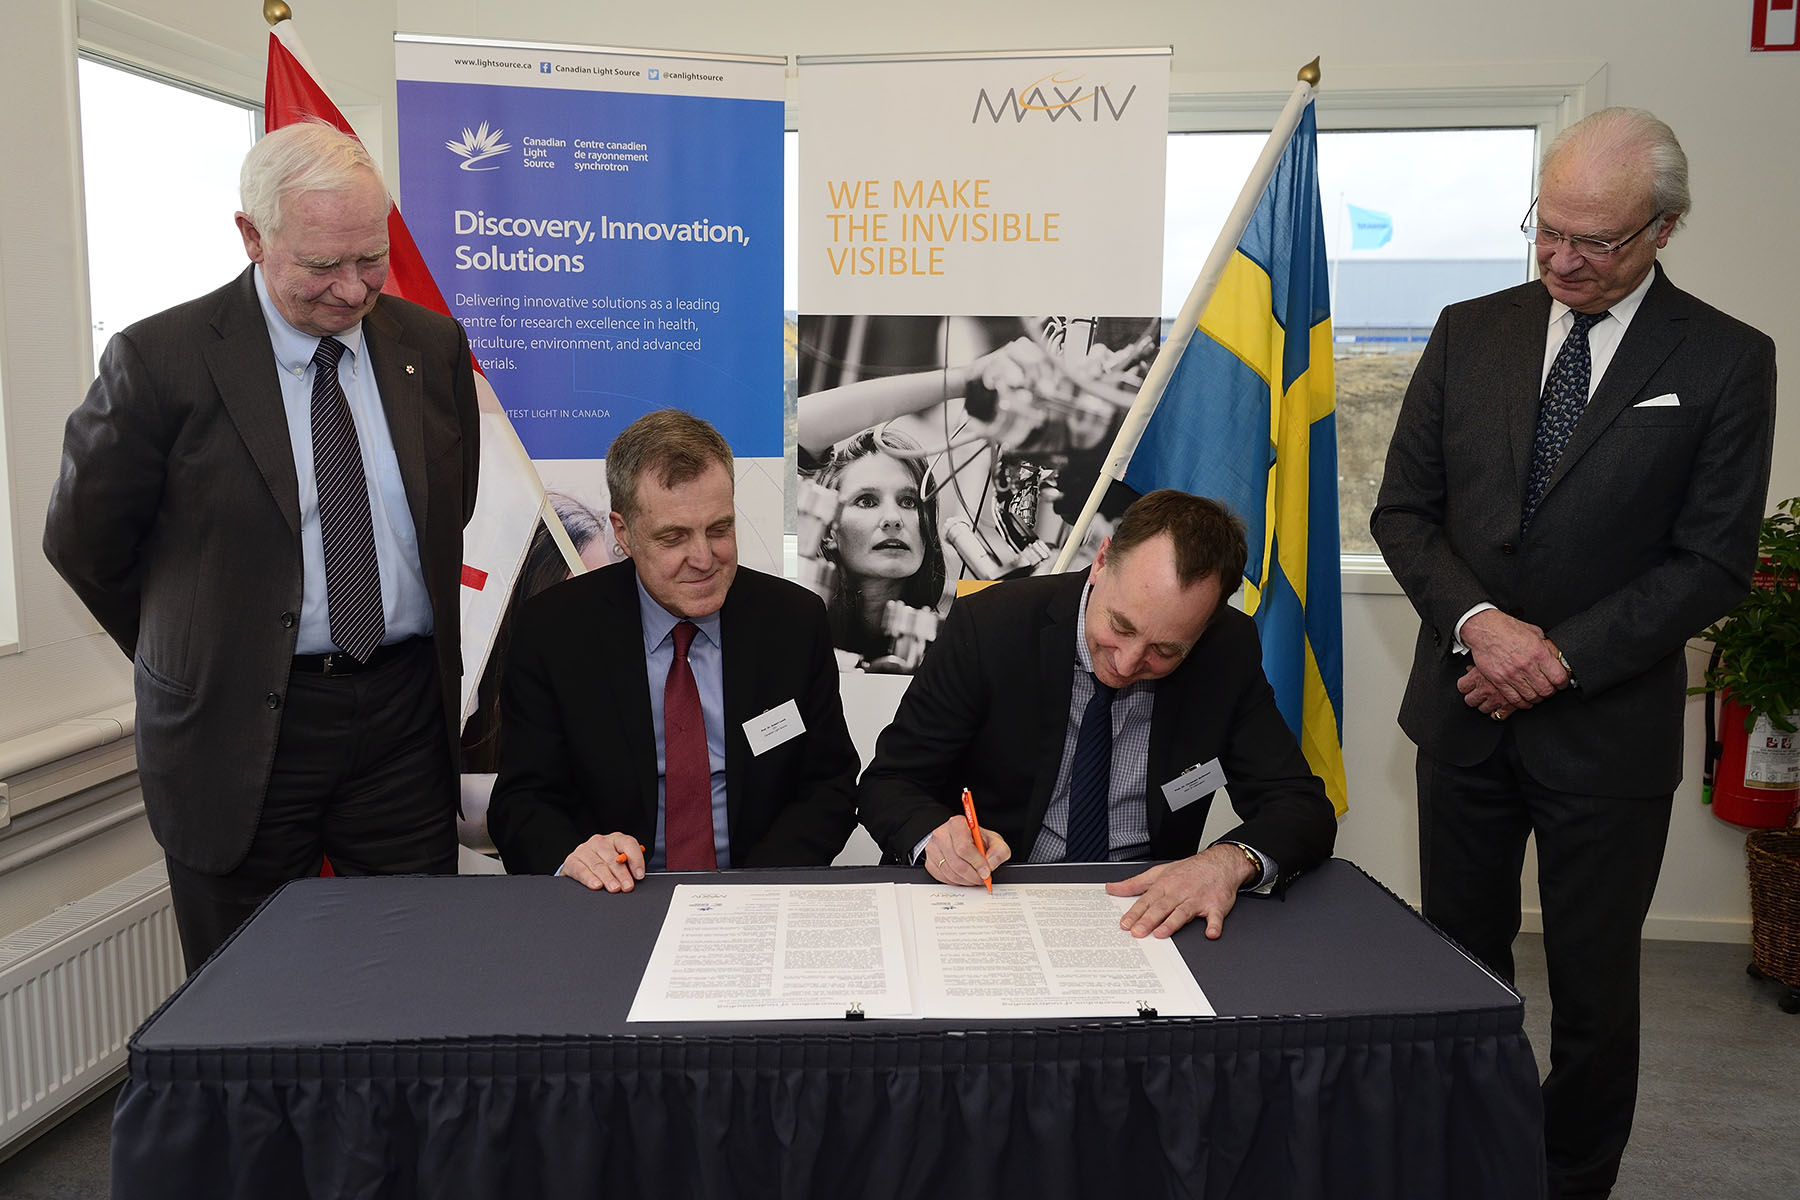 At the end of the discussion, His Excellency and His Majesty King Carl XVI Gustaf witnessed the signing of the renewal of a Memorandum of Understanding between Canadian Light Source and MAX IV on the exchange of knowledge and personnel between the two organizations.